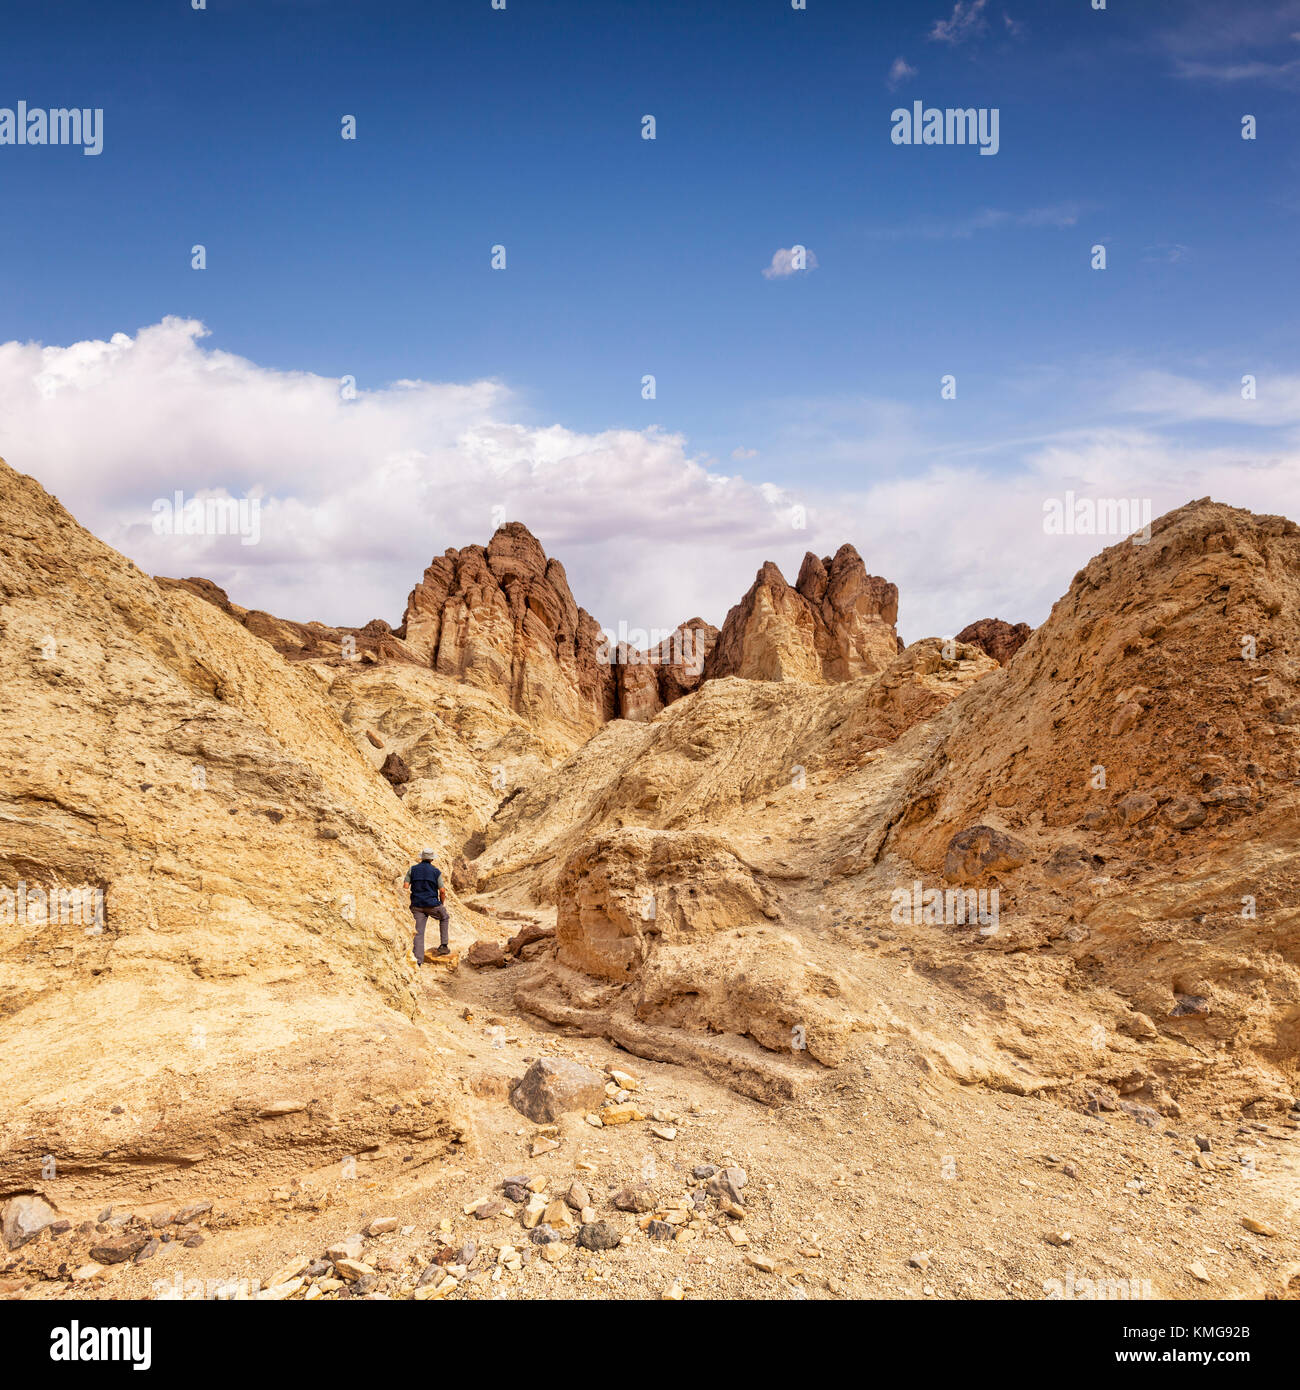 Senior man hiking the trail in Golden Canyon, Death Valley, USA. - Stock Image